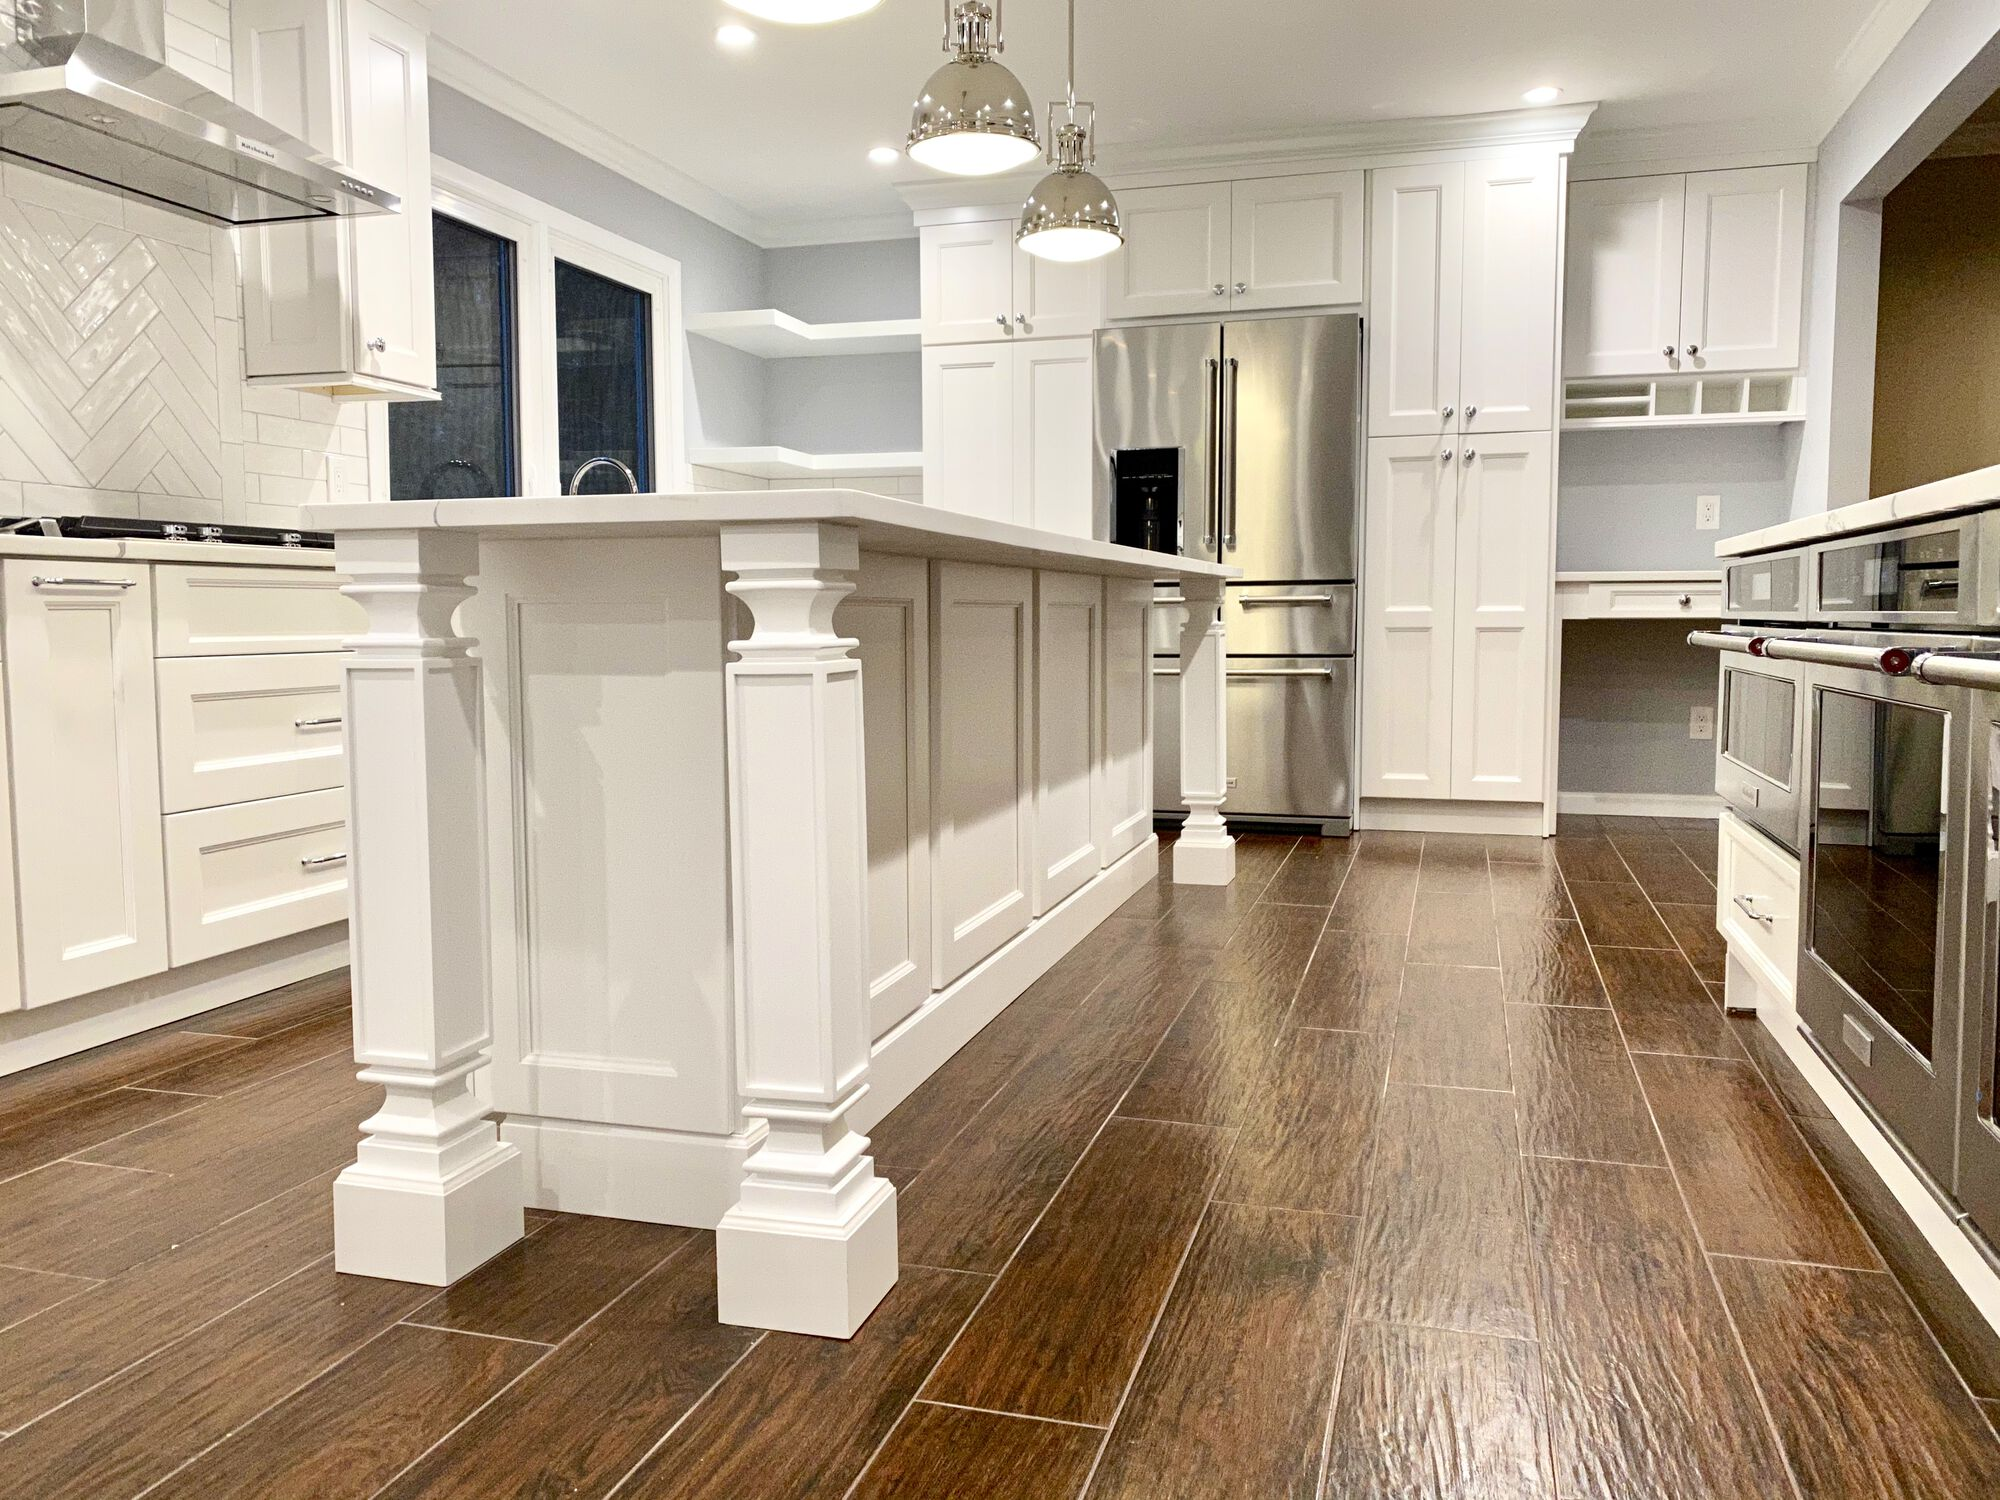 Shaker Style Cabinets, Island with Seating, Open Seating, Tile Flooring in Montville, Morris County NJ